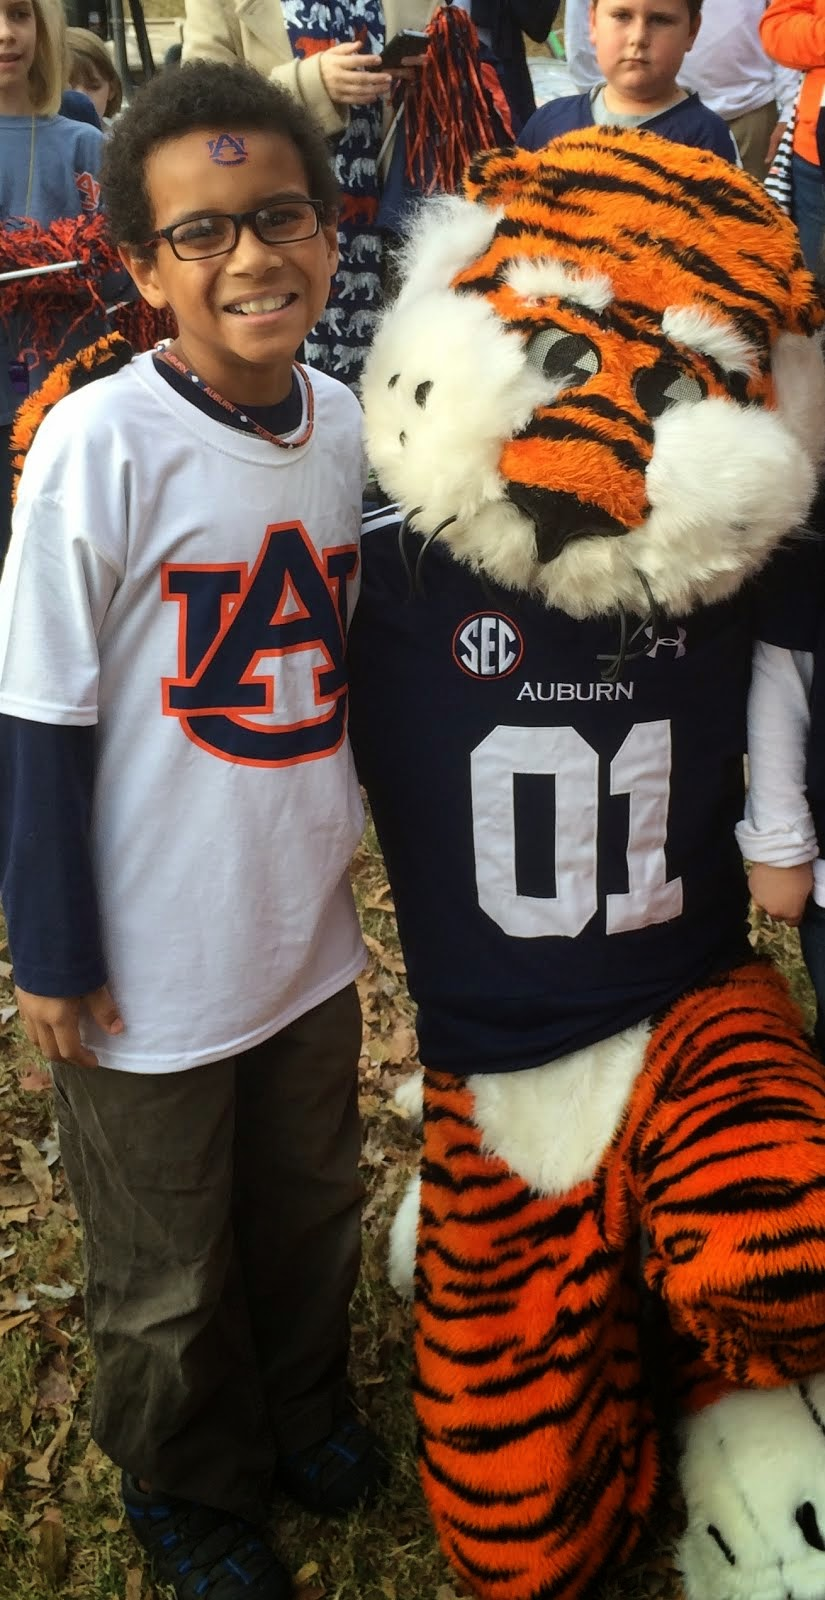 Goober and Aubie